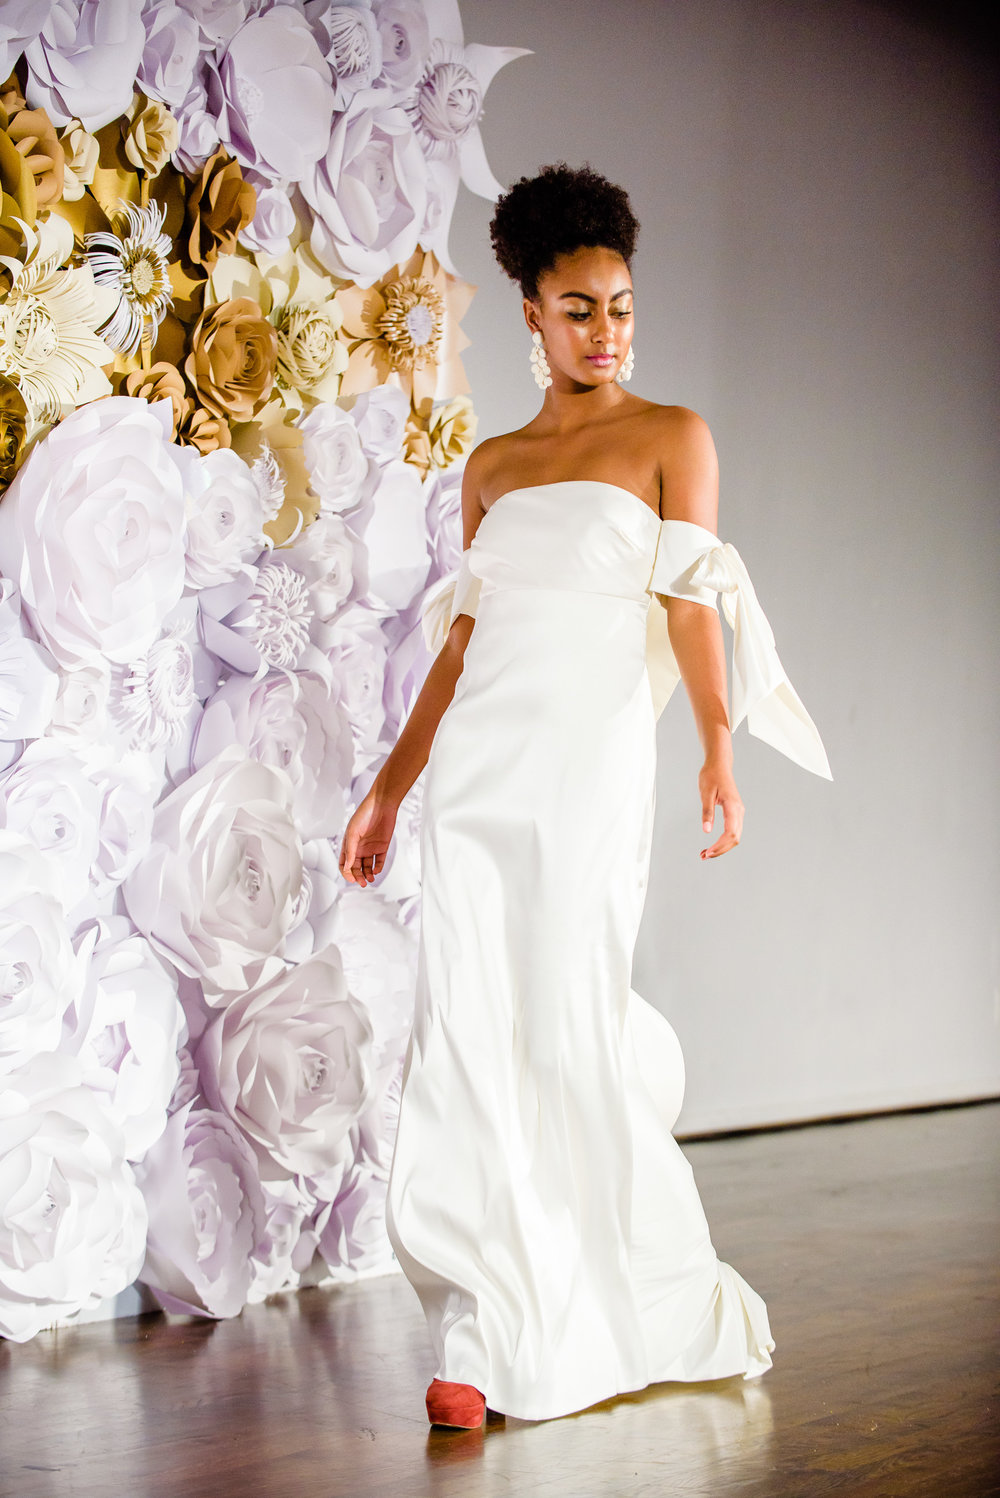 Just one of hundreds of designer bridal gowns to be seen on the runway at the Wedding Party EXPO!